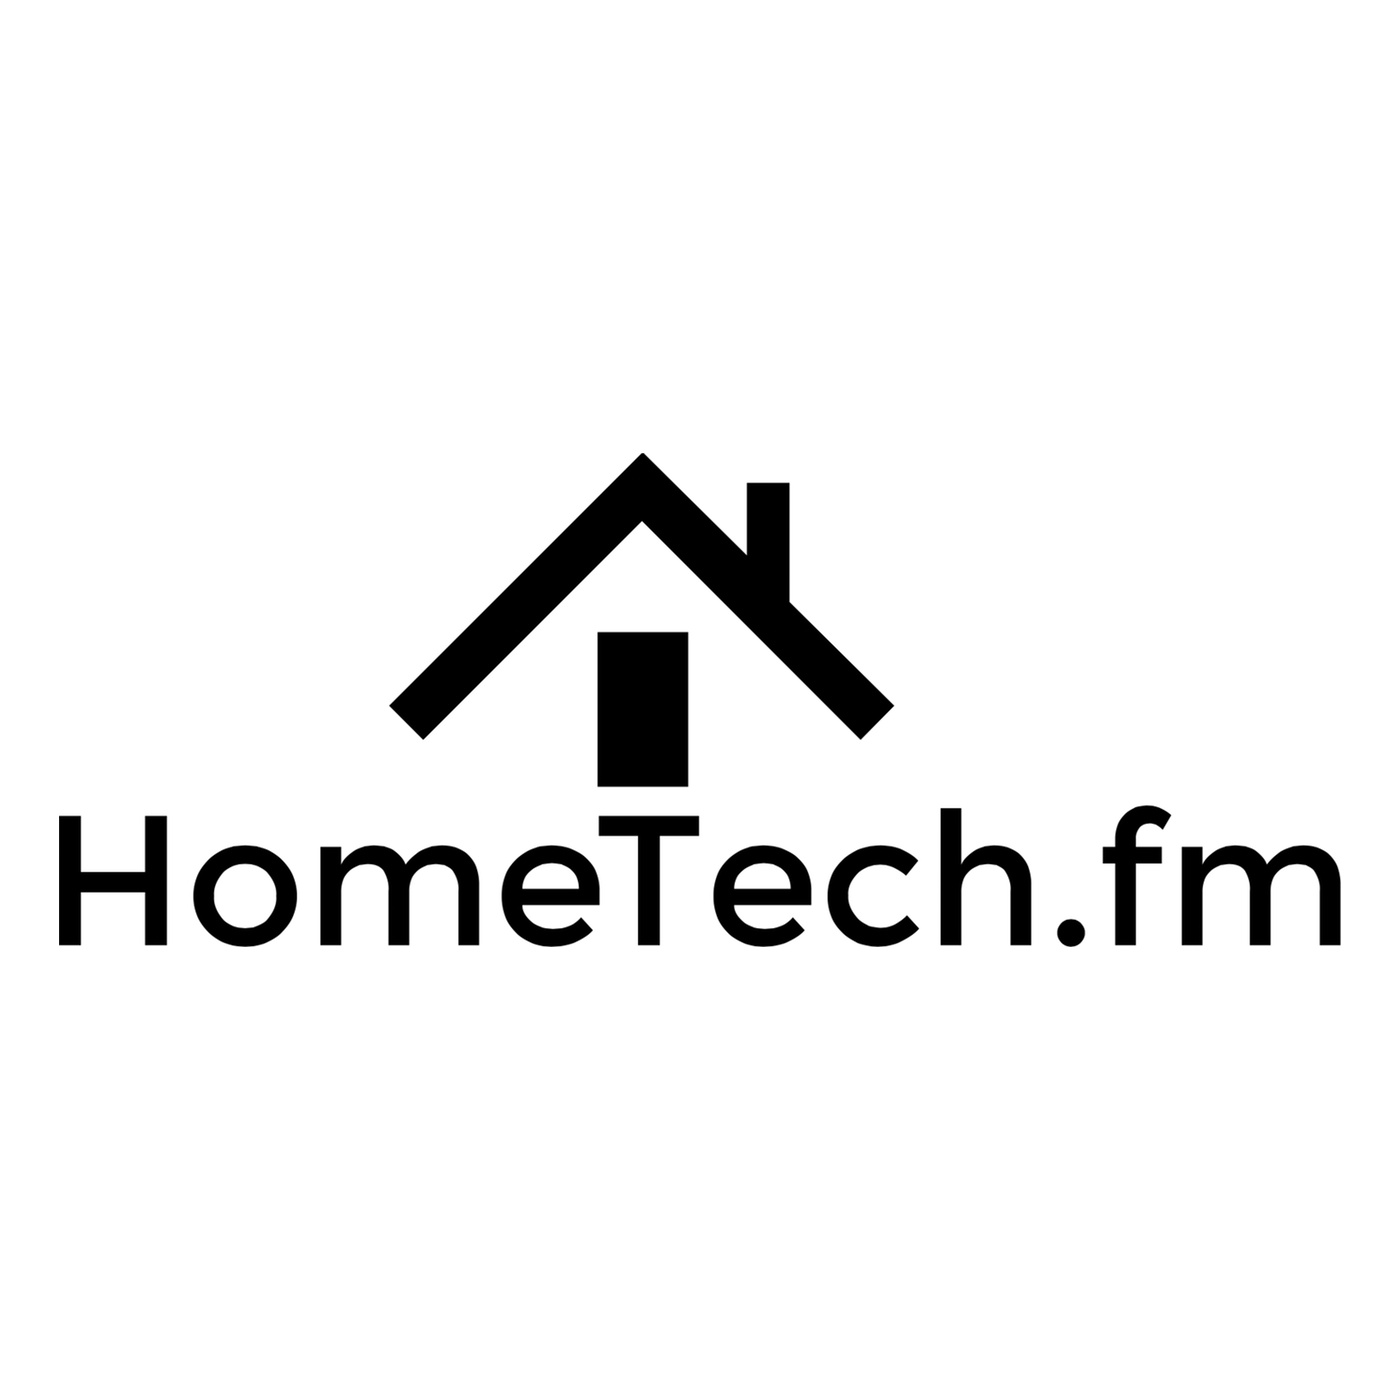 HomeTech.fm Podcast